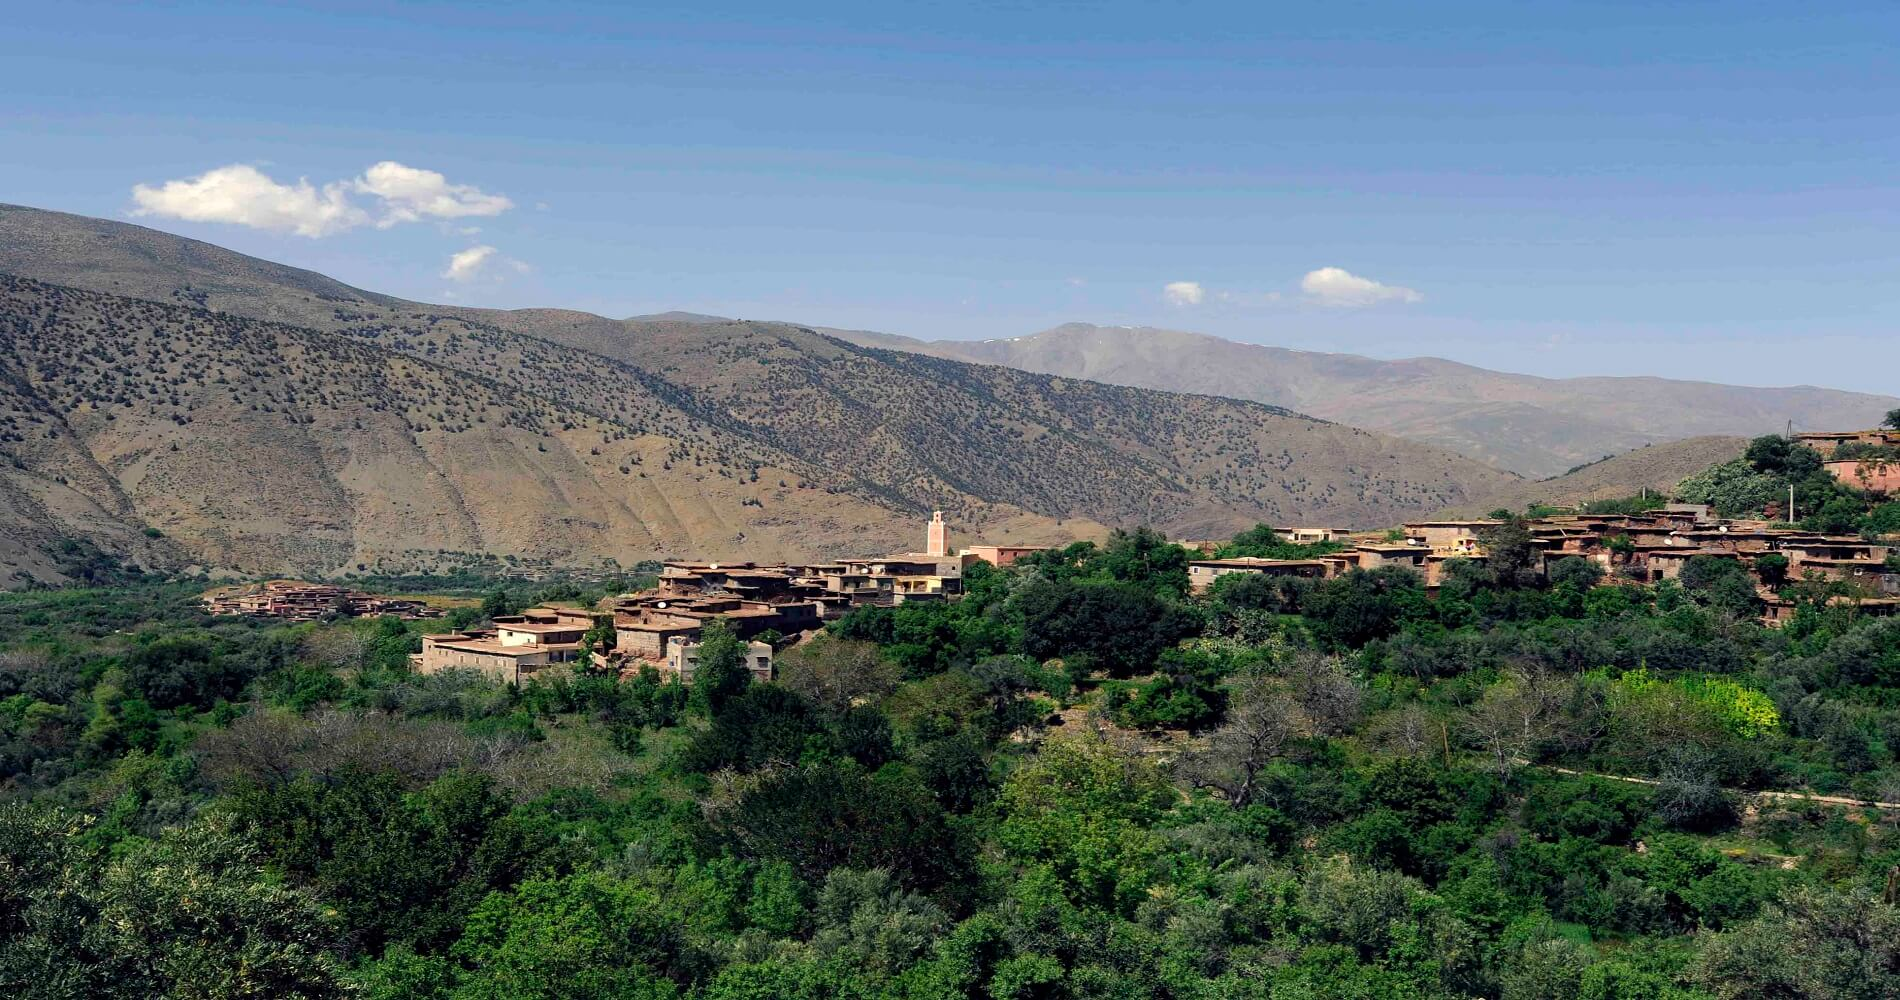 green valley with old buildings in atlas mountains